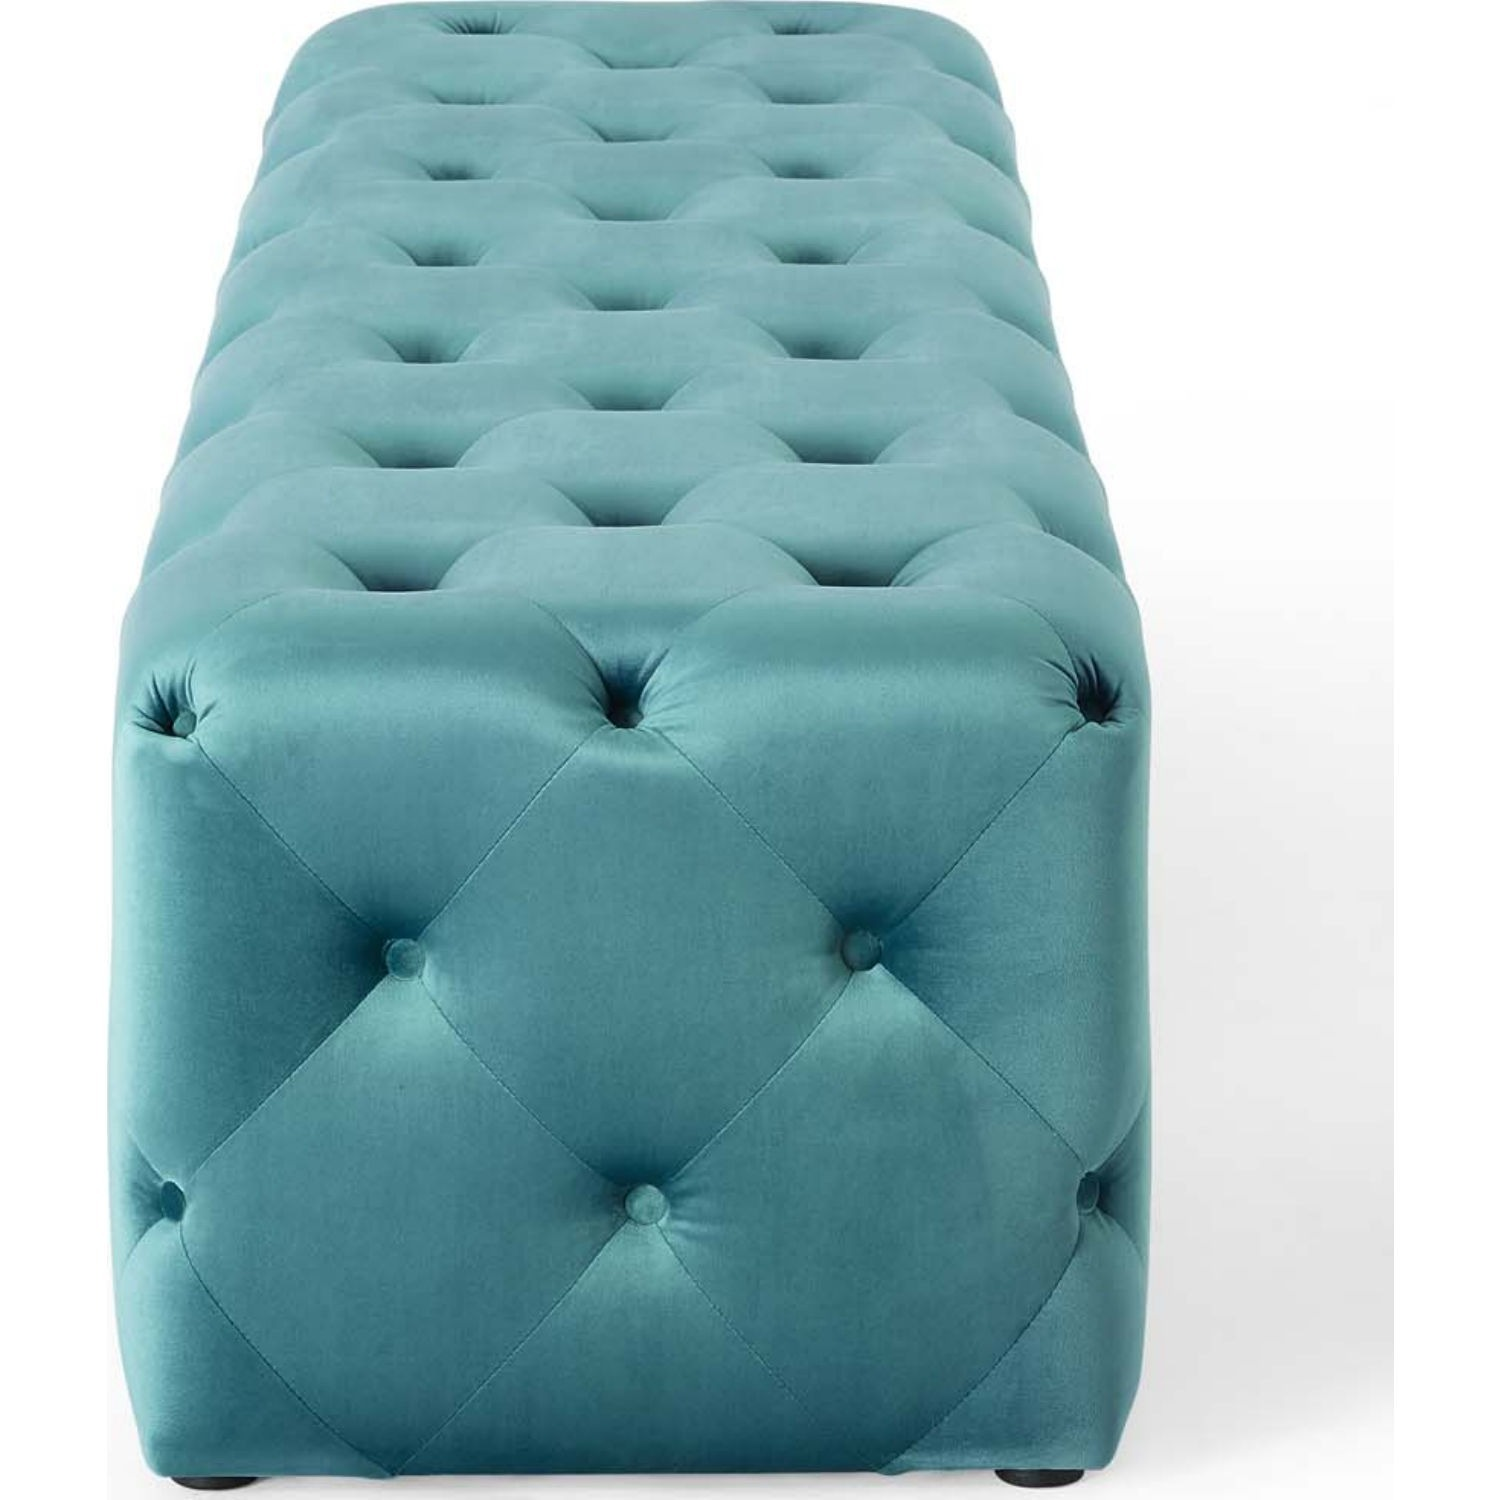 """72"""" Bench In Sea Blue Button Tufted Velvet Fabric - image-3"""